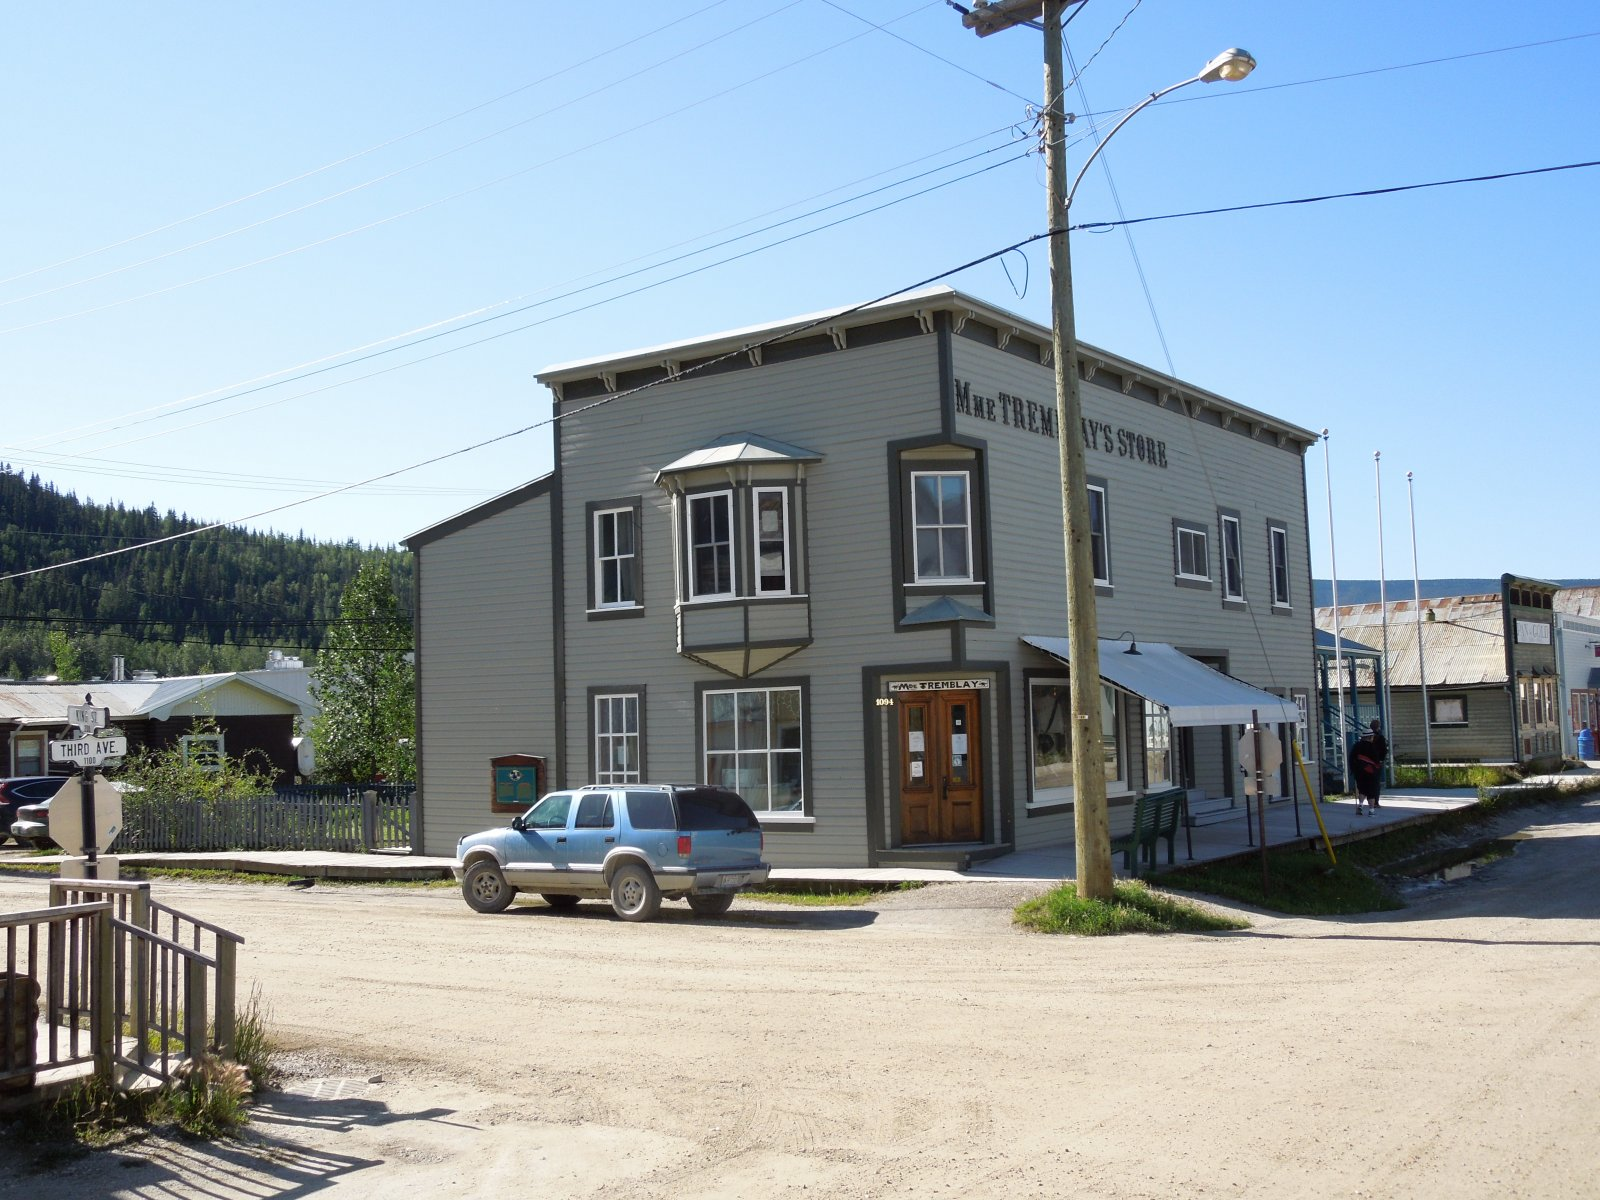 Click image for larger version  Name:Dawson City to Carmacks 006.jpg Views:76 Size:340.7 KB ID:221757